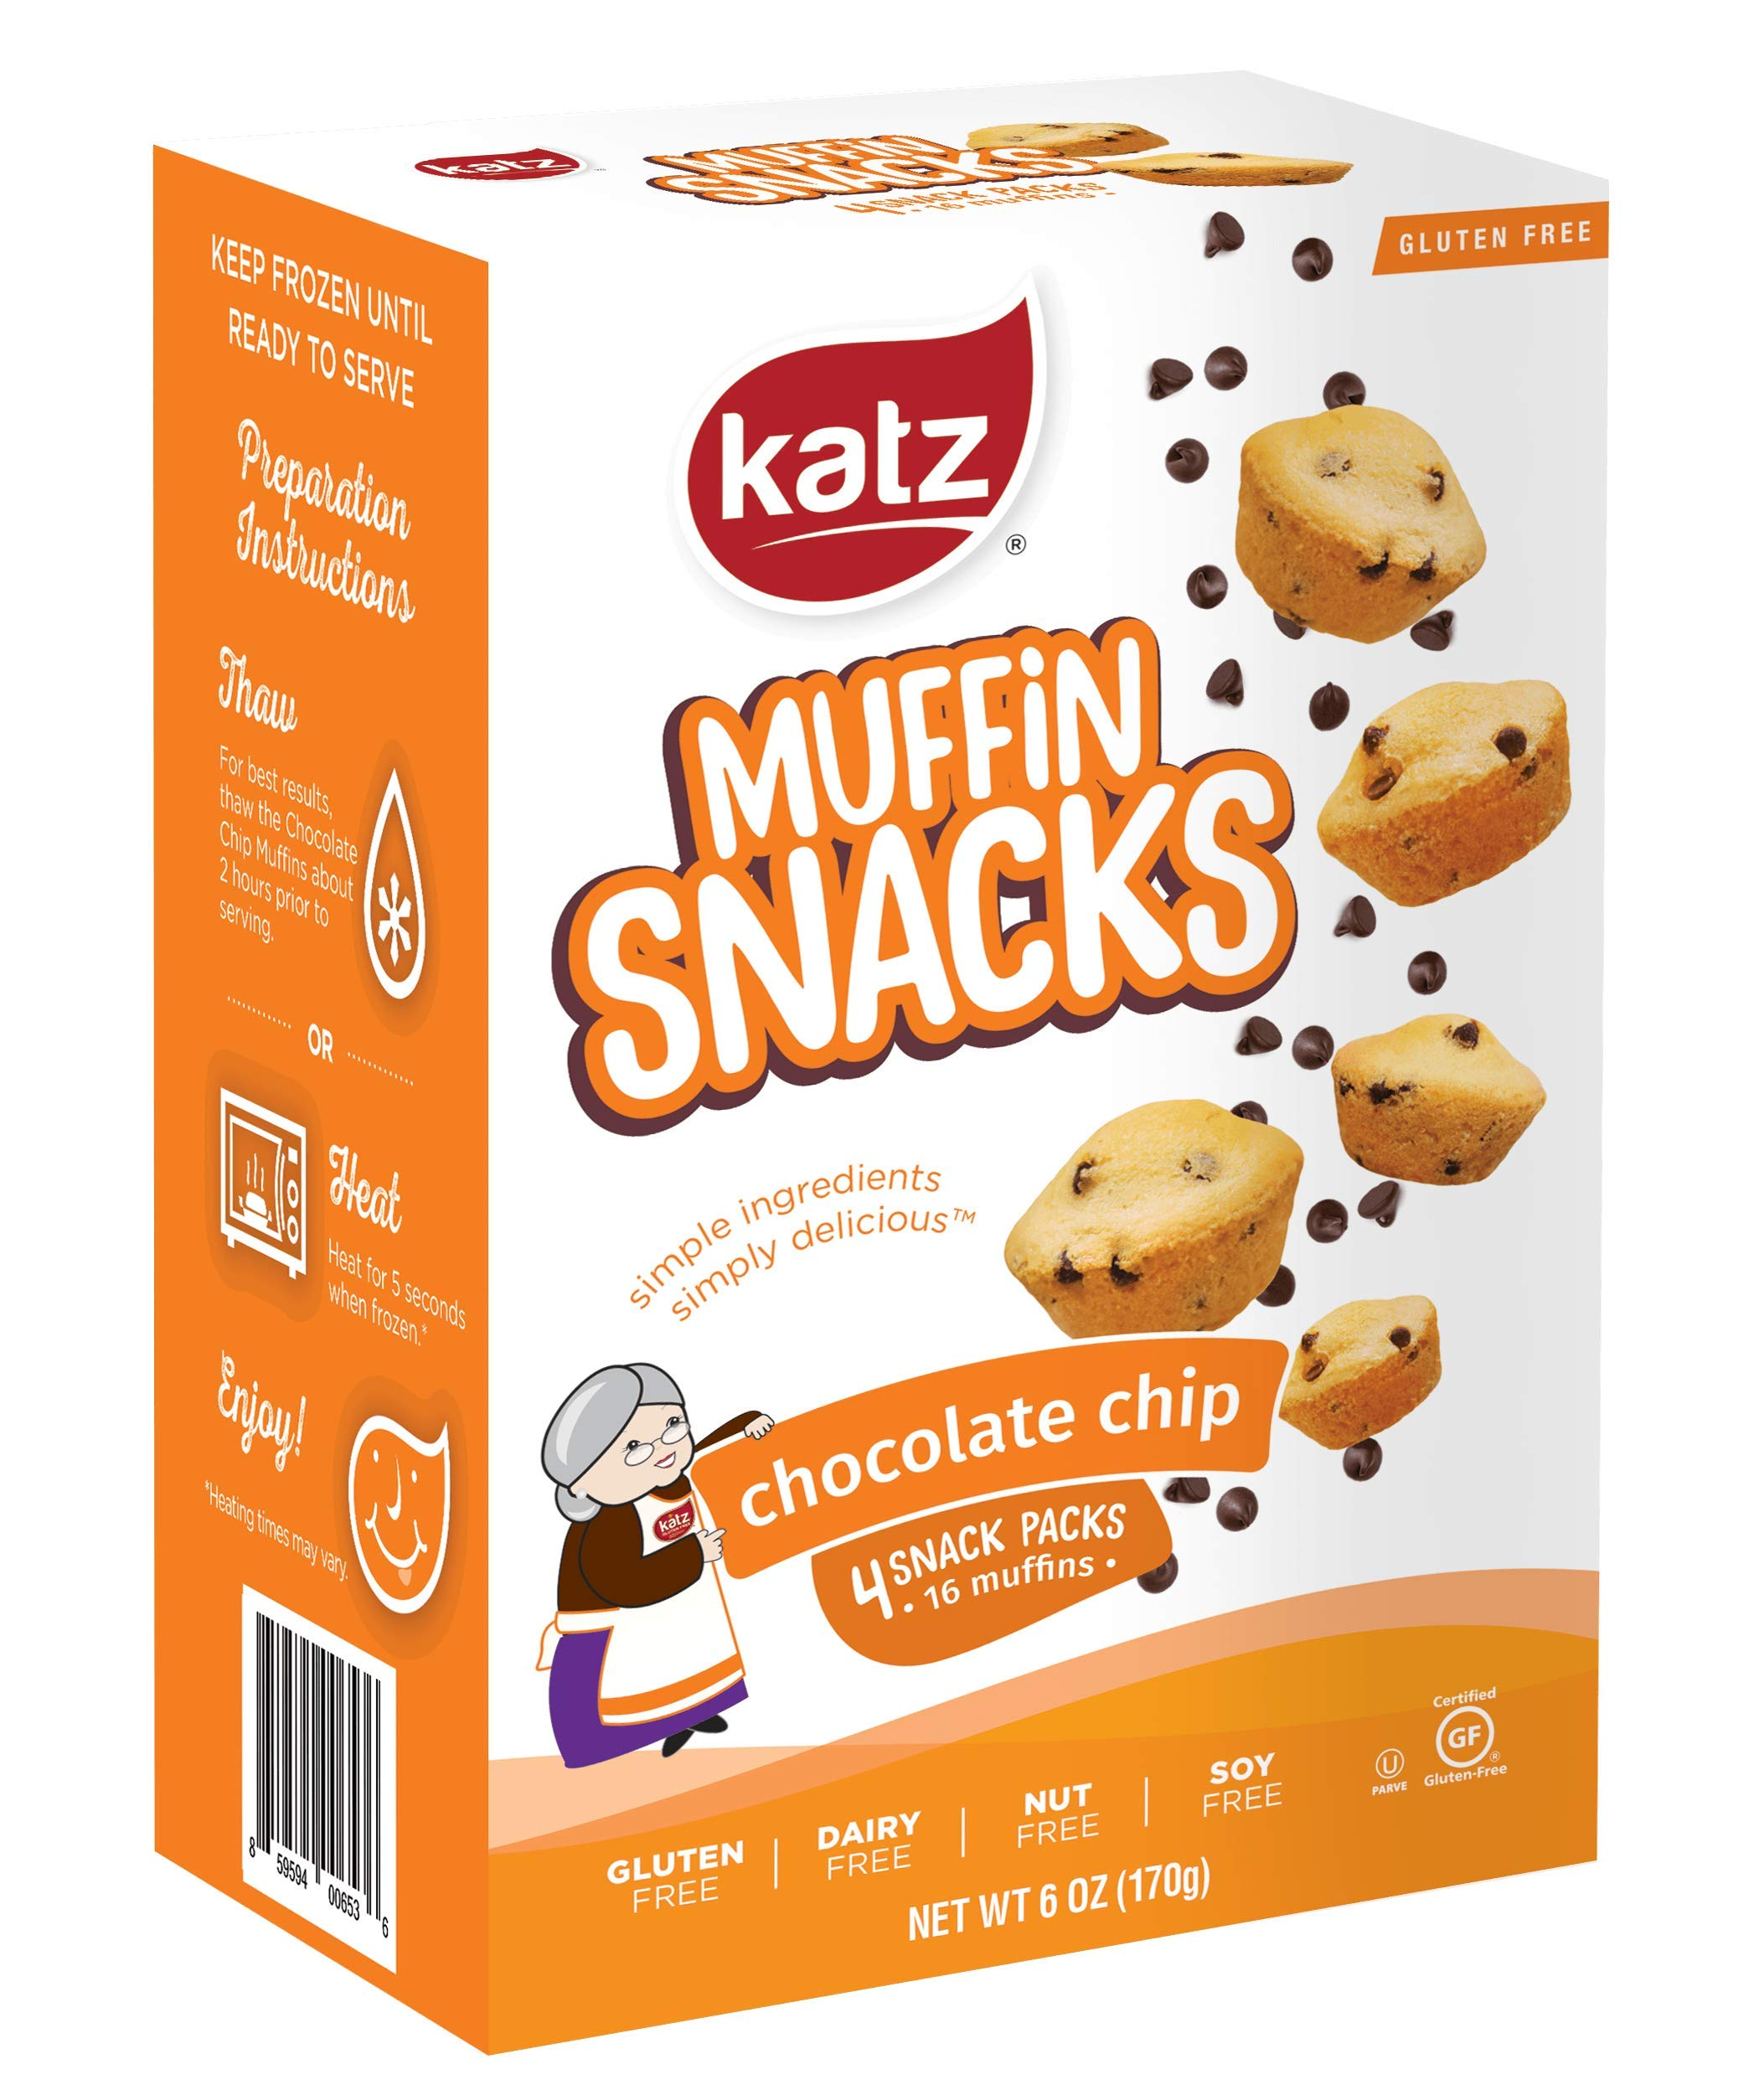 Katz Gluten Free Chocolate Chip Muffin Snacks | Dairy, Nut, Soy and Gluten Free | Kosher (3 Packs, 6 Ounce Each) by Katz Gluten Free